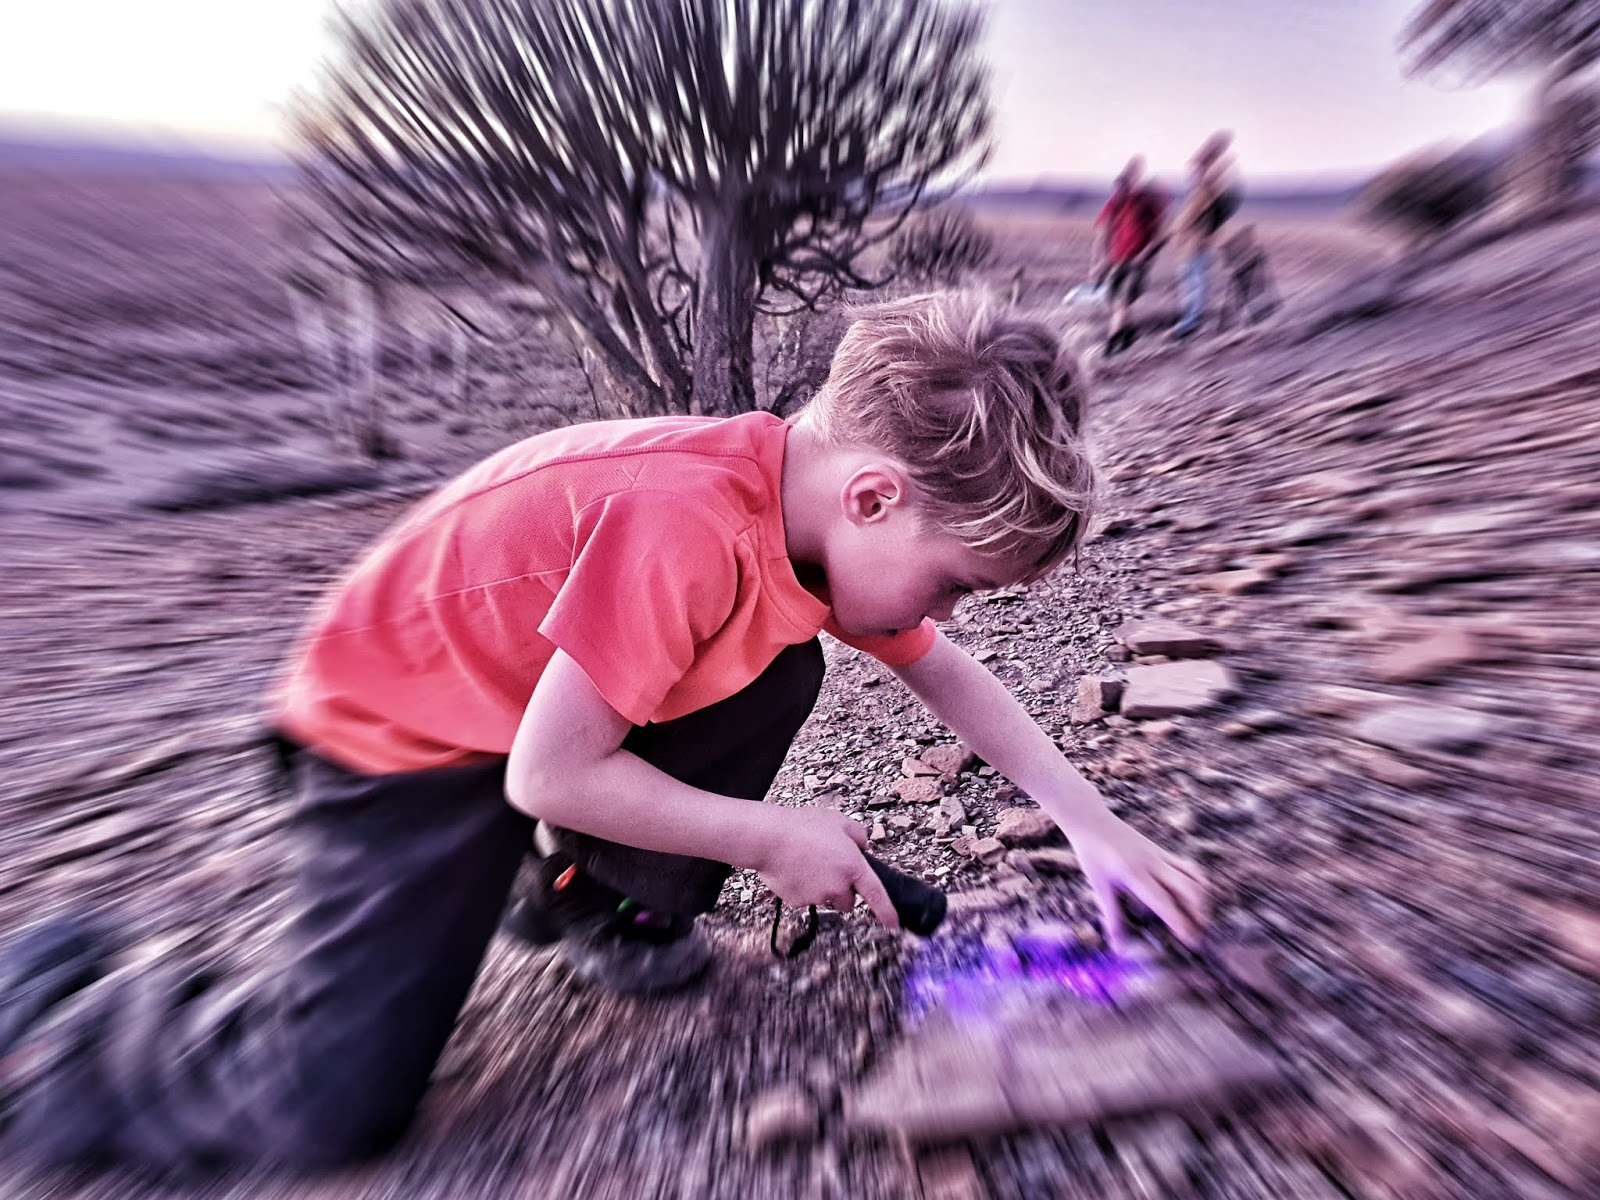 Gannabos, Quiver tree forest, Nieuwoudtville, Alex Aitkenhead, South Africa, Northern Cape, West Coast Flowers, Bulb Capital of the world, Aloe Dichotoma, Star Trails, Celestial Photography, African sunset, African Desert, Star Photography,  Samsung Note 10, Canon